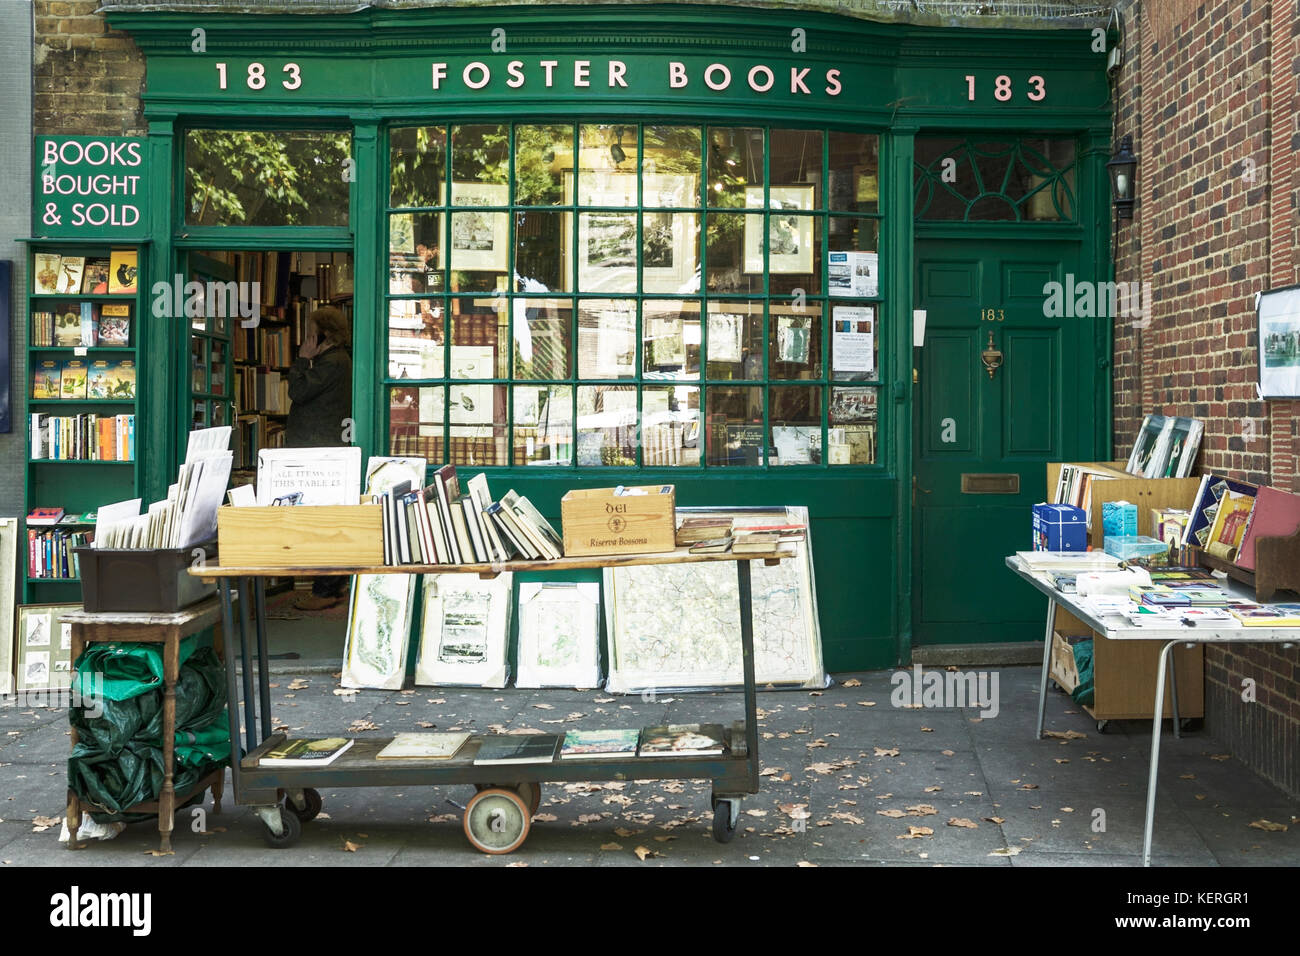 Bookshops UK. Foster Books, Chiswick High Rd, Chiswick, London.  Booksellers in an 18th-century building. Bookshop - Stock Image